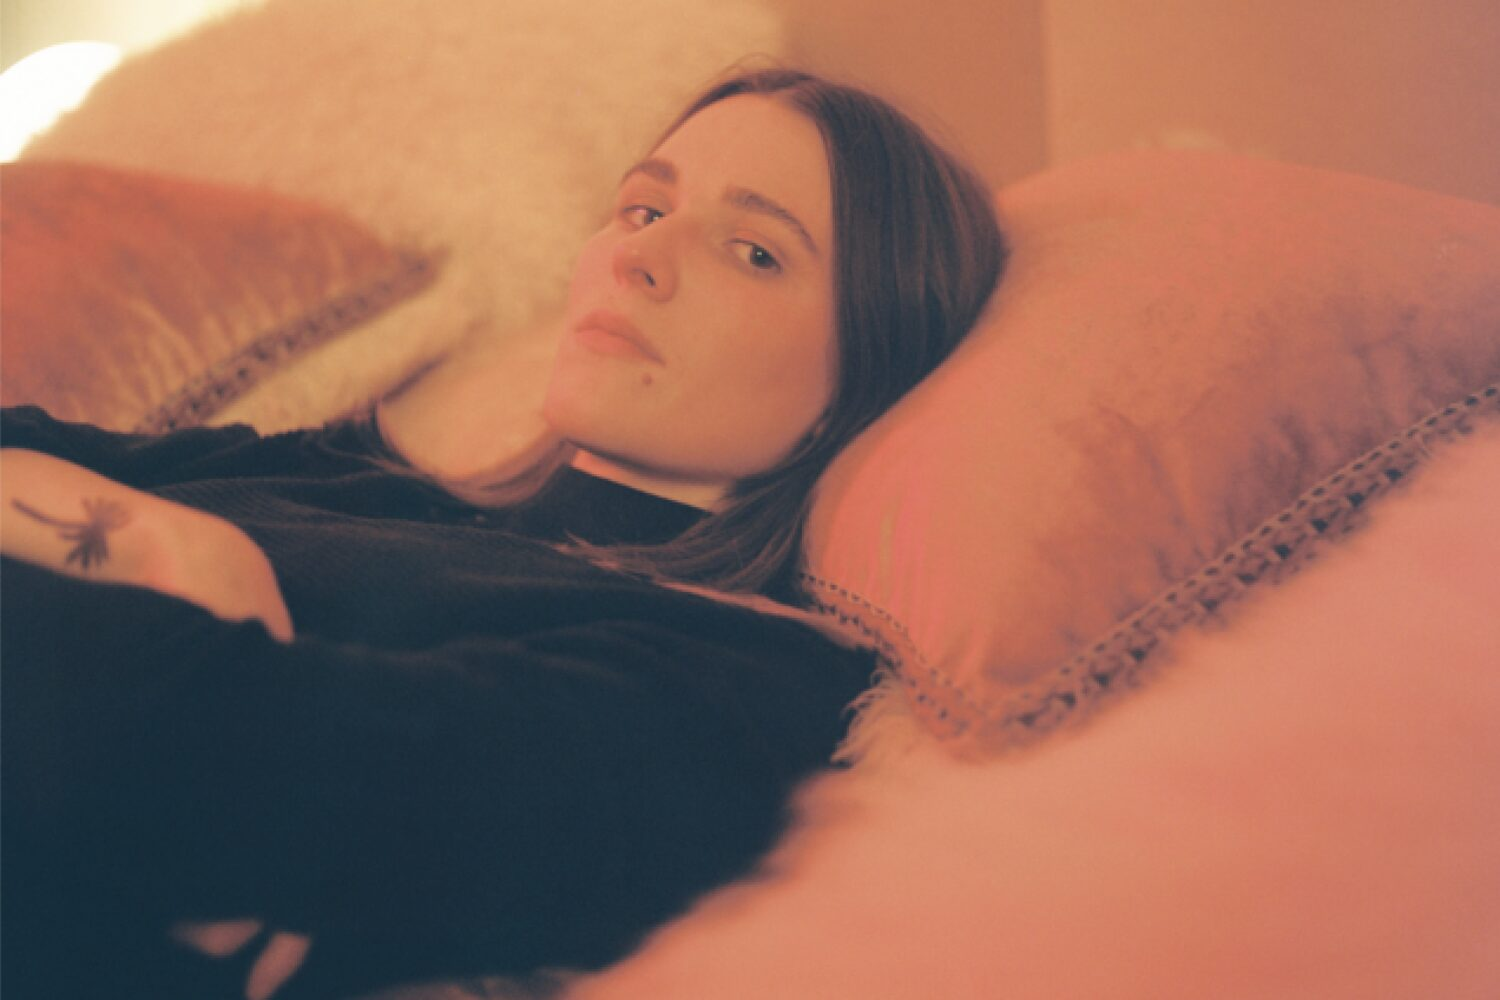 Art School Girlfriend shares new track 'Come Back To Me'